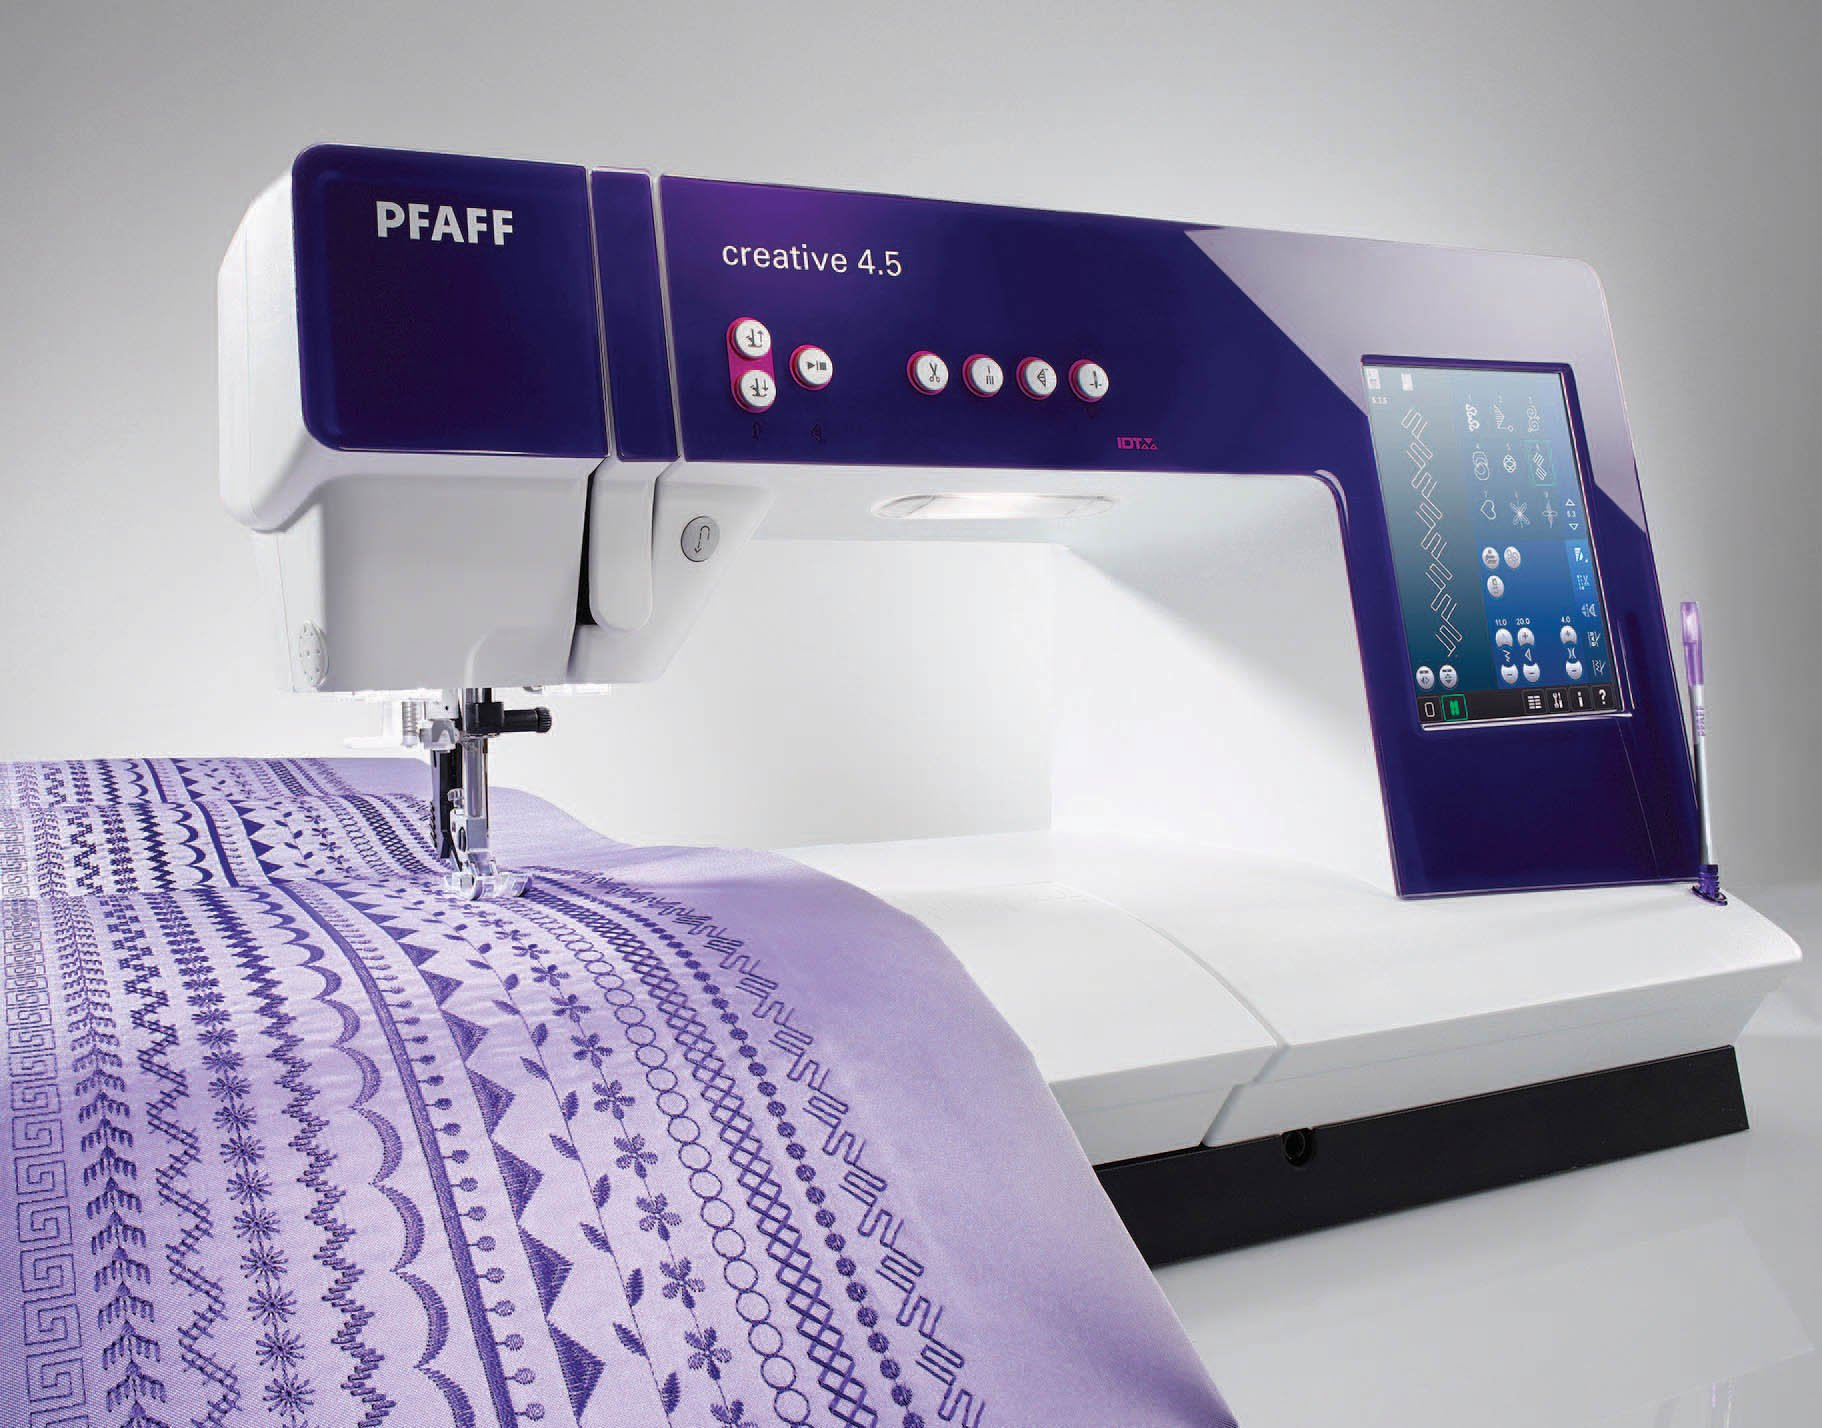 Pfaff Creative 4.5 without embroidery unit (Add emb unit separate #1095)